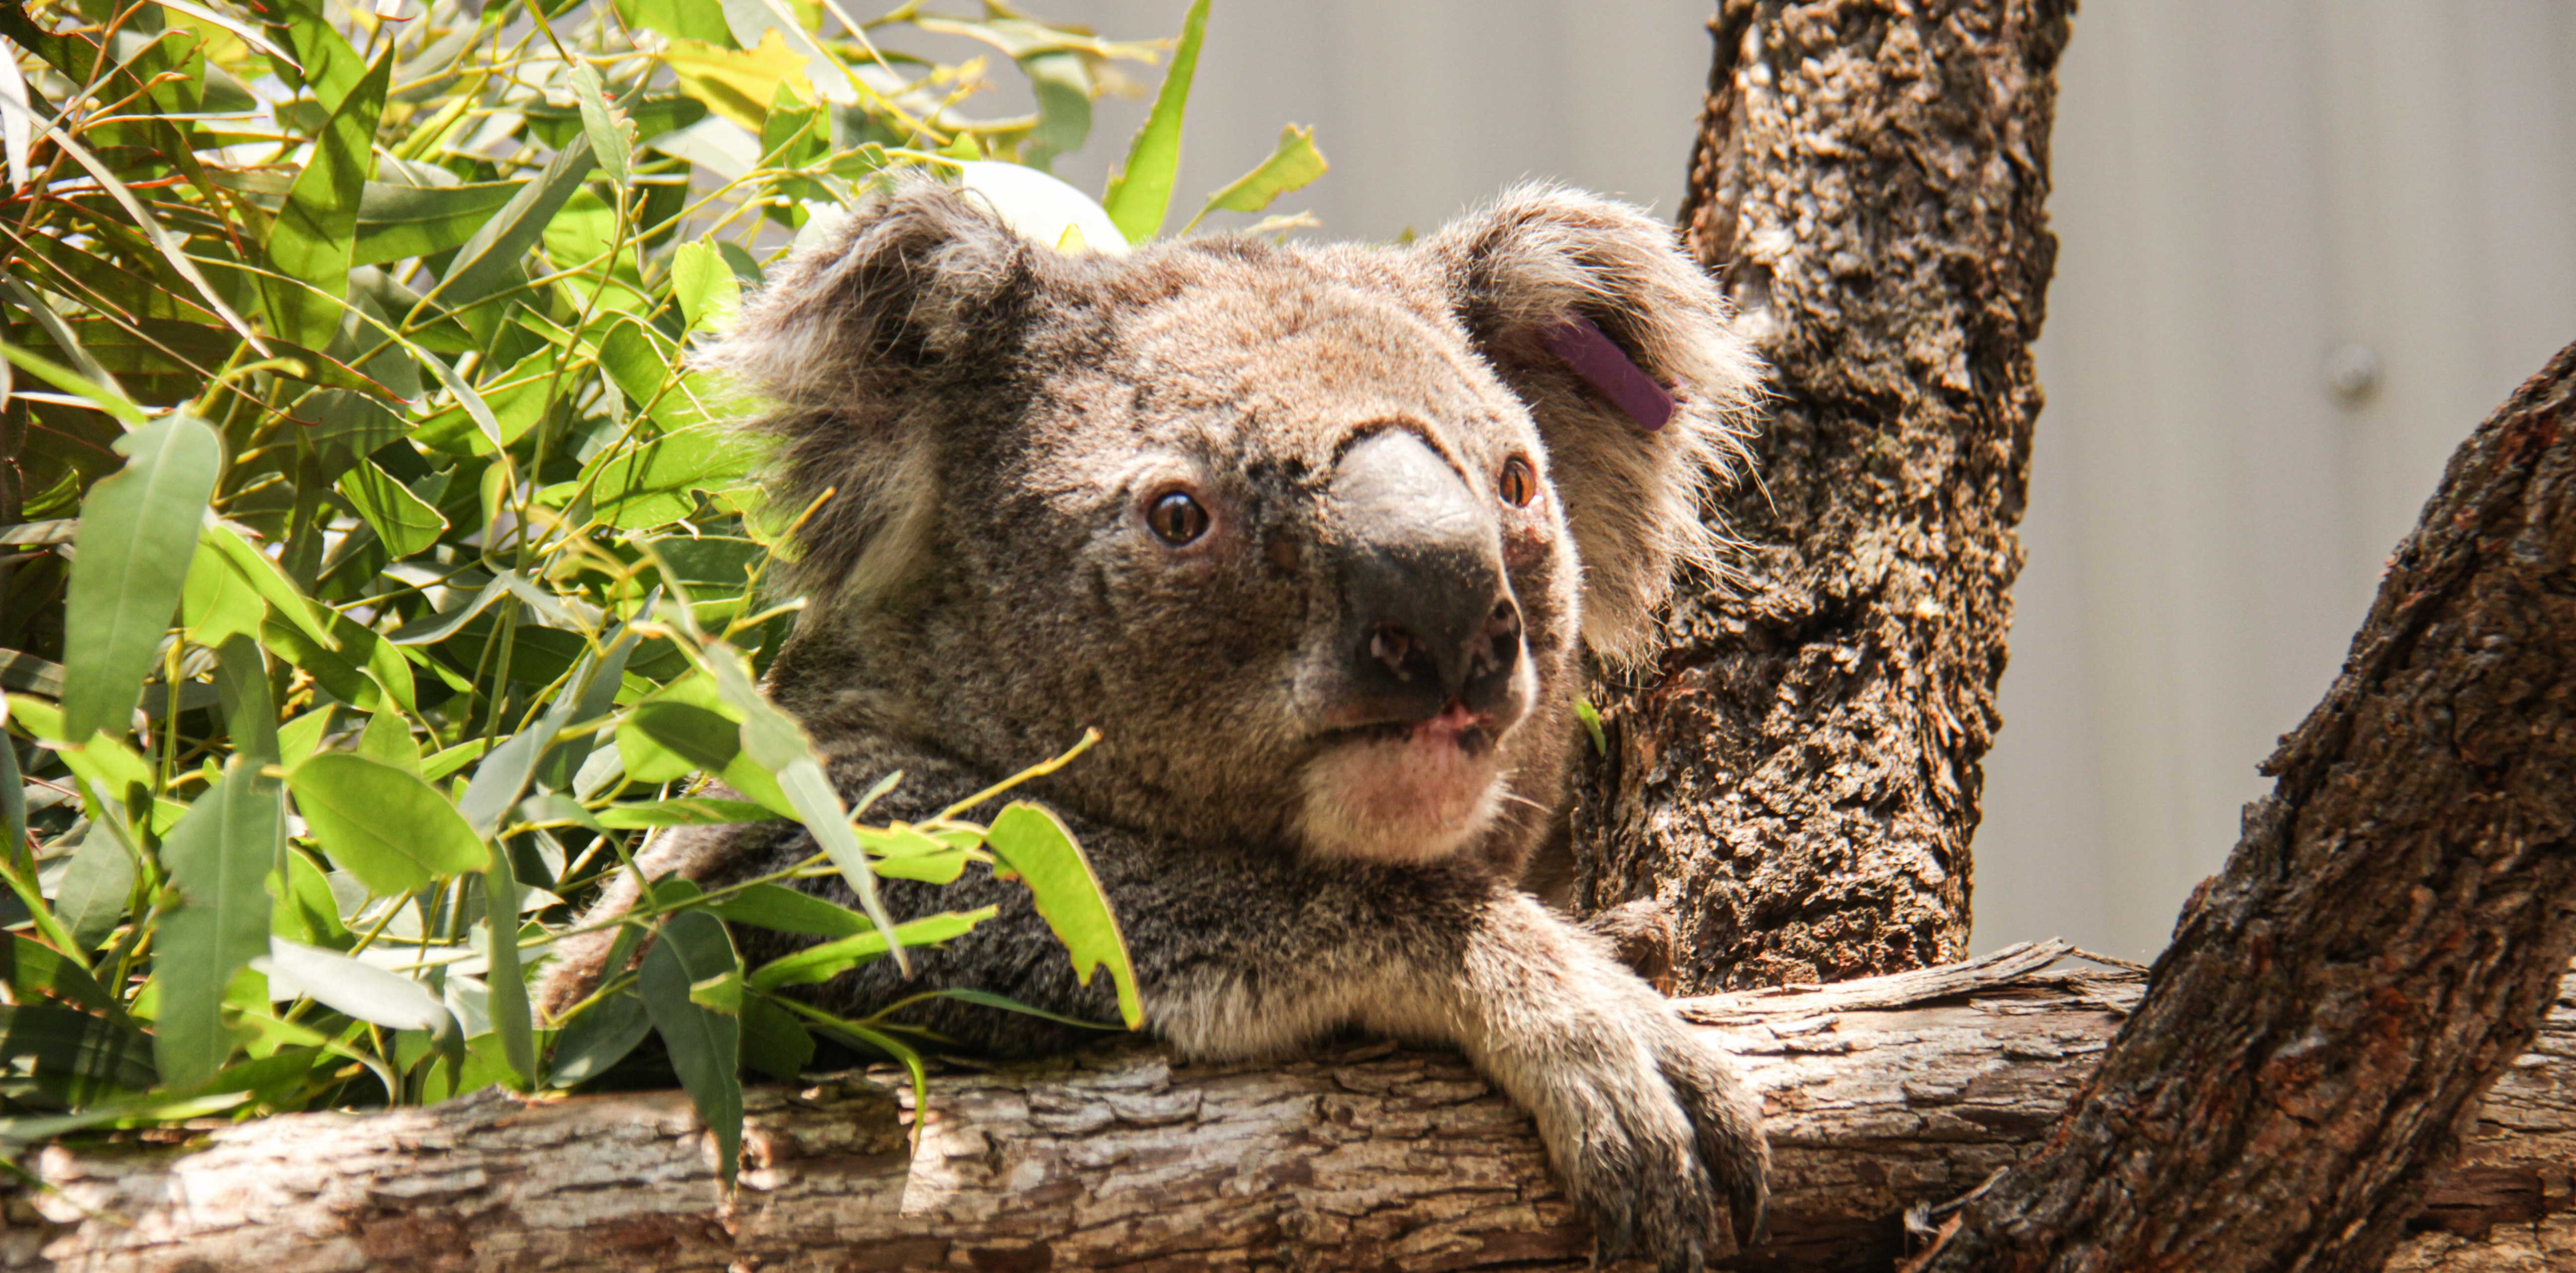 One of the Blue Mountains' koalas successfully evacuated, due to bush fires